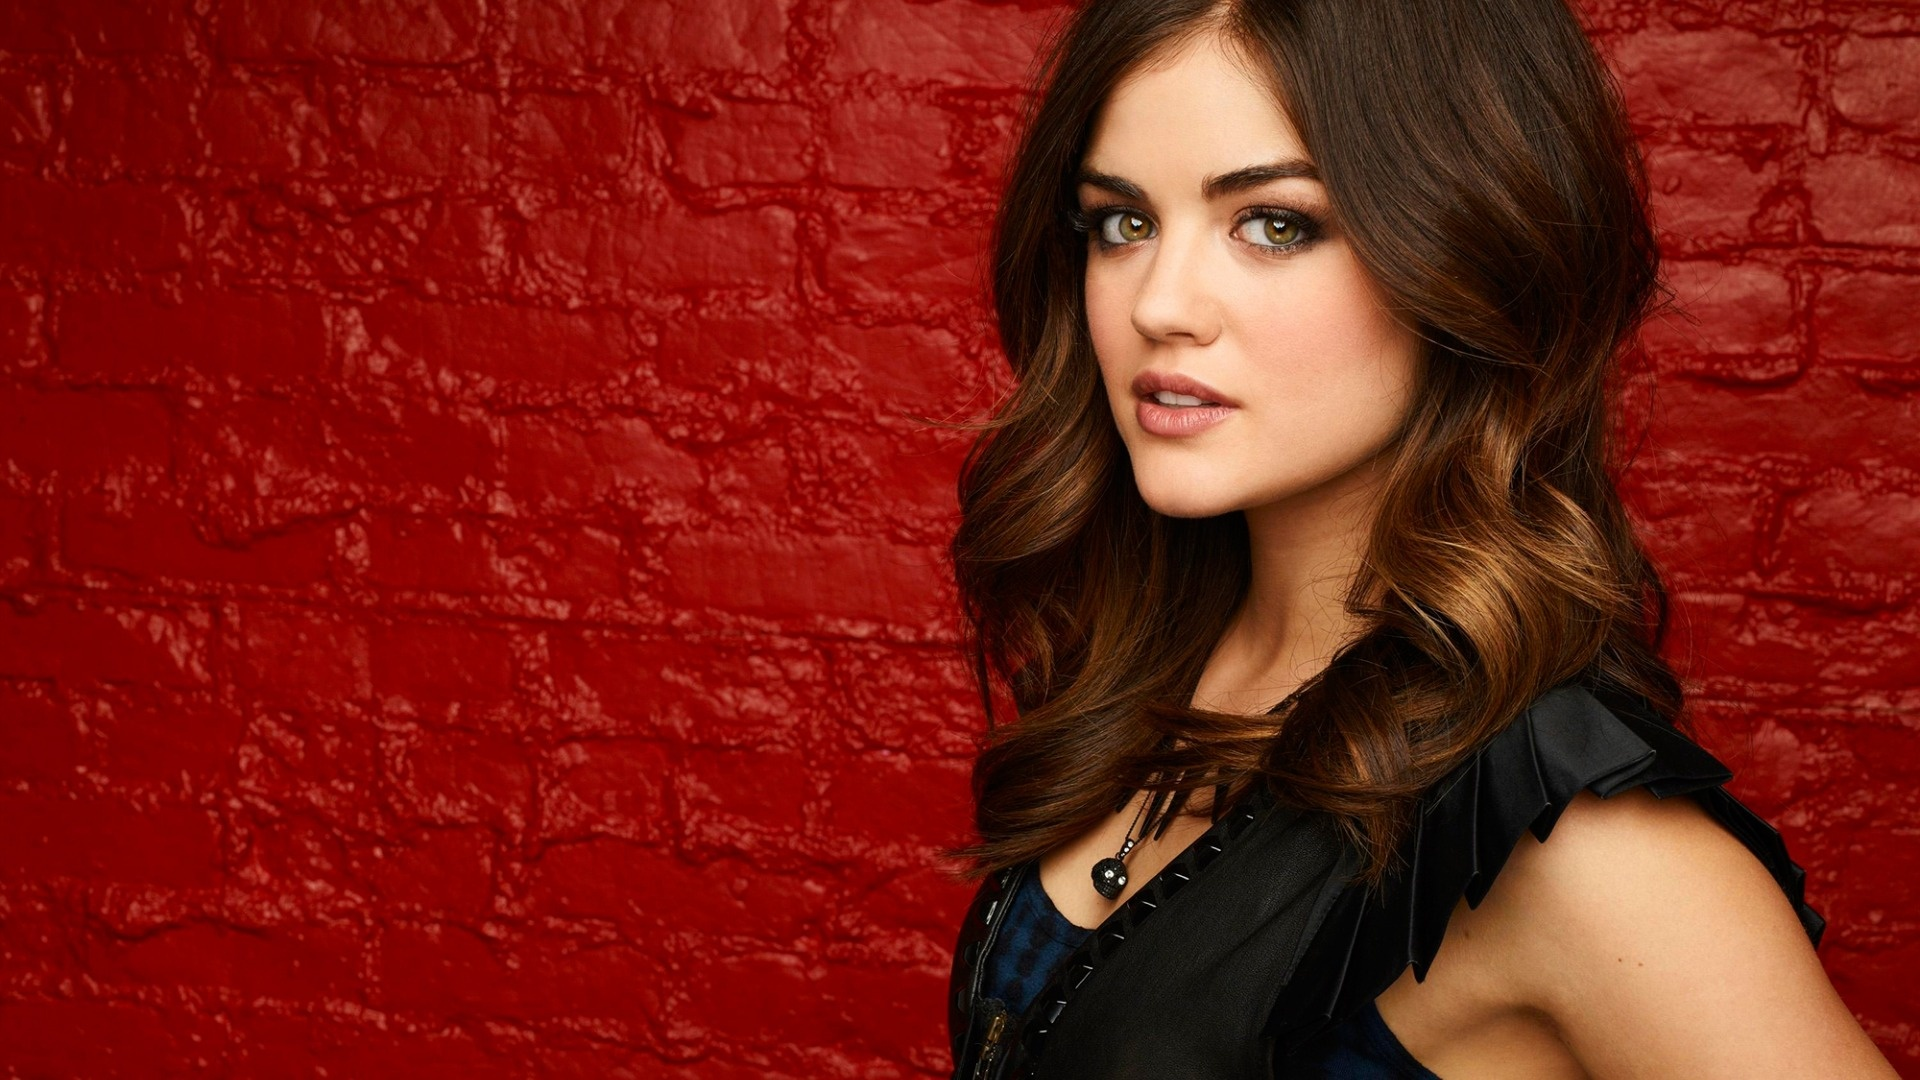 Lucy Hale Red Wall Wallpapers x